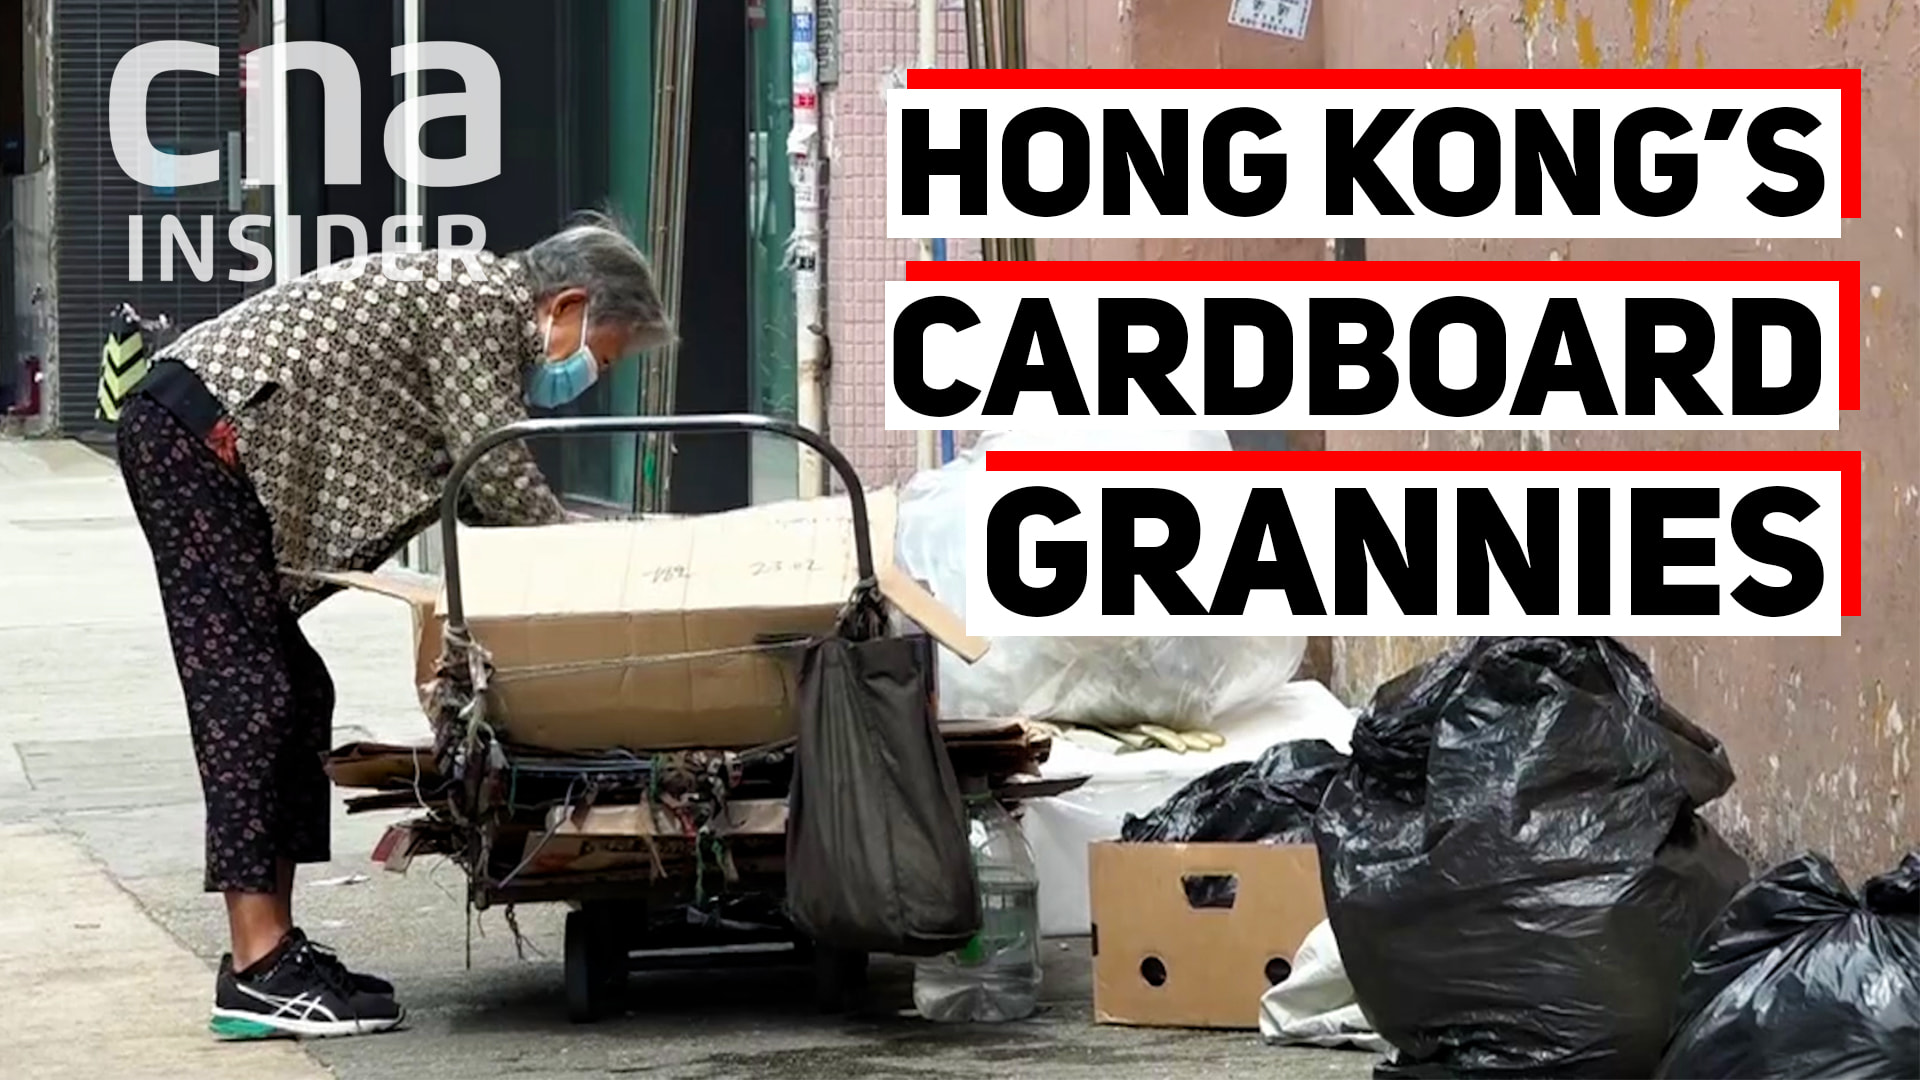 Hong Kong's Cardboard Granny: The Elderly Poor Struggle Amid COVID-19